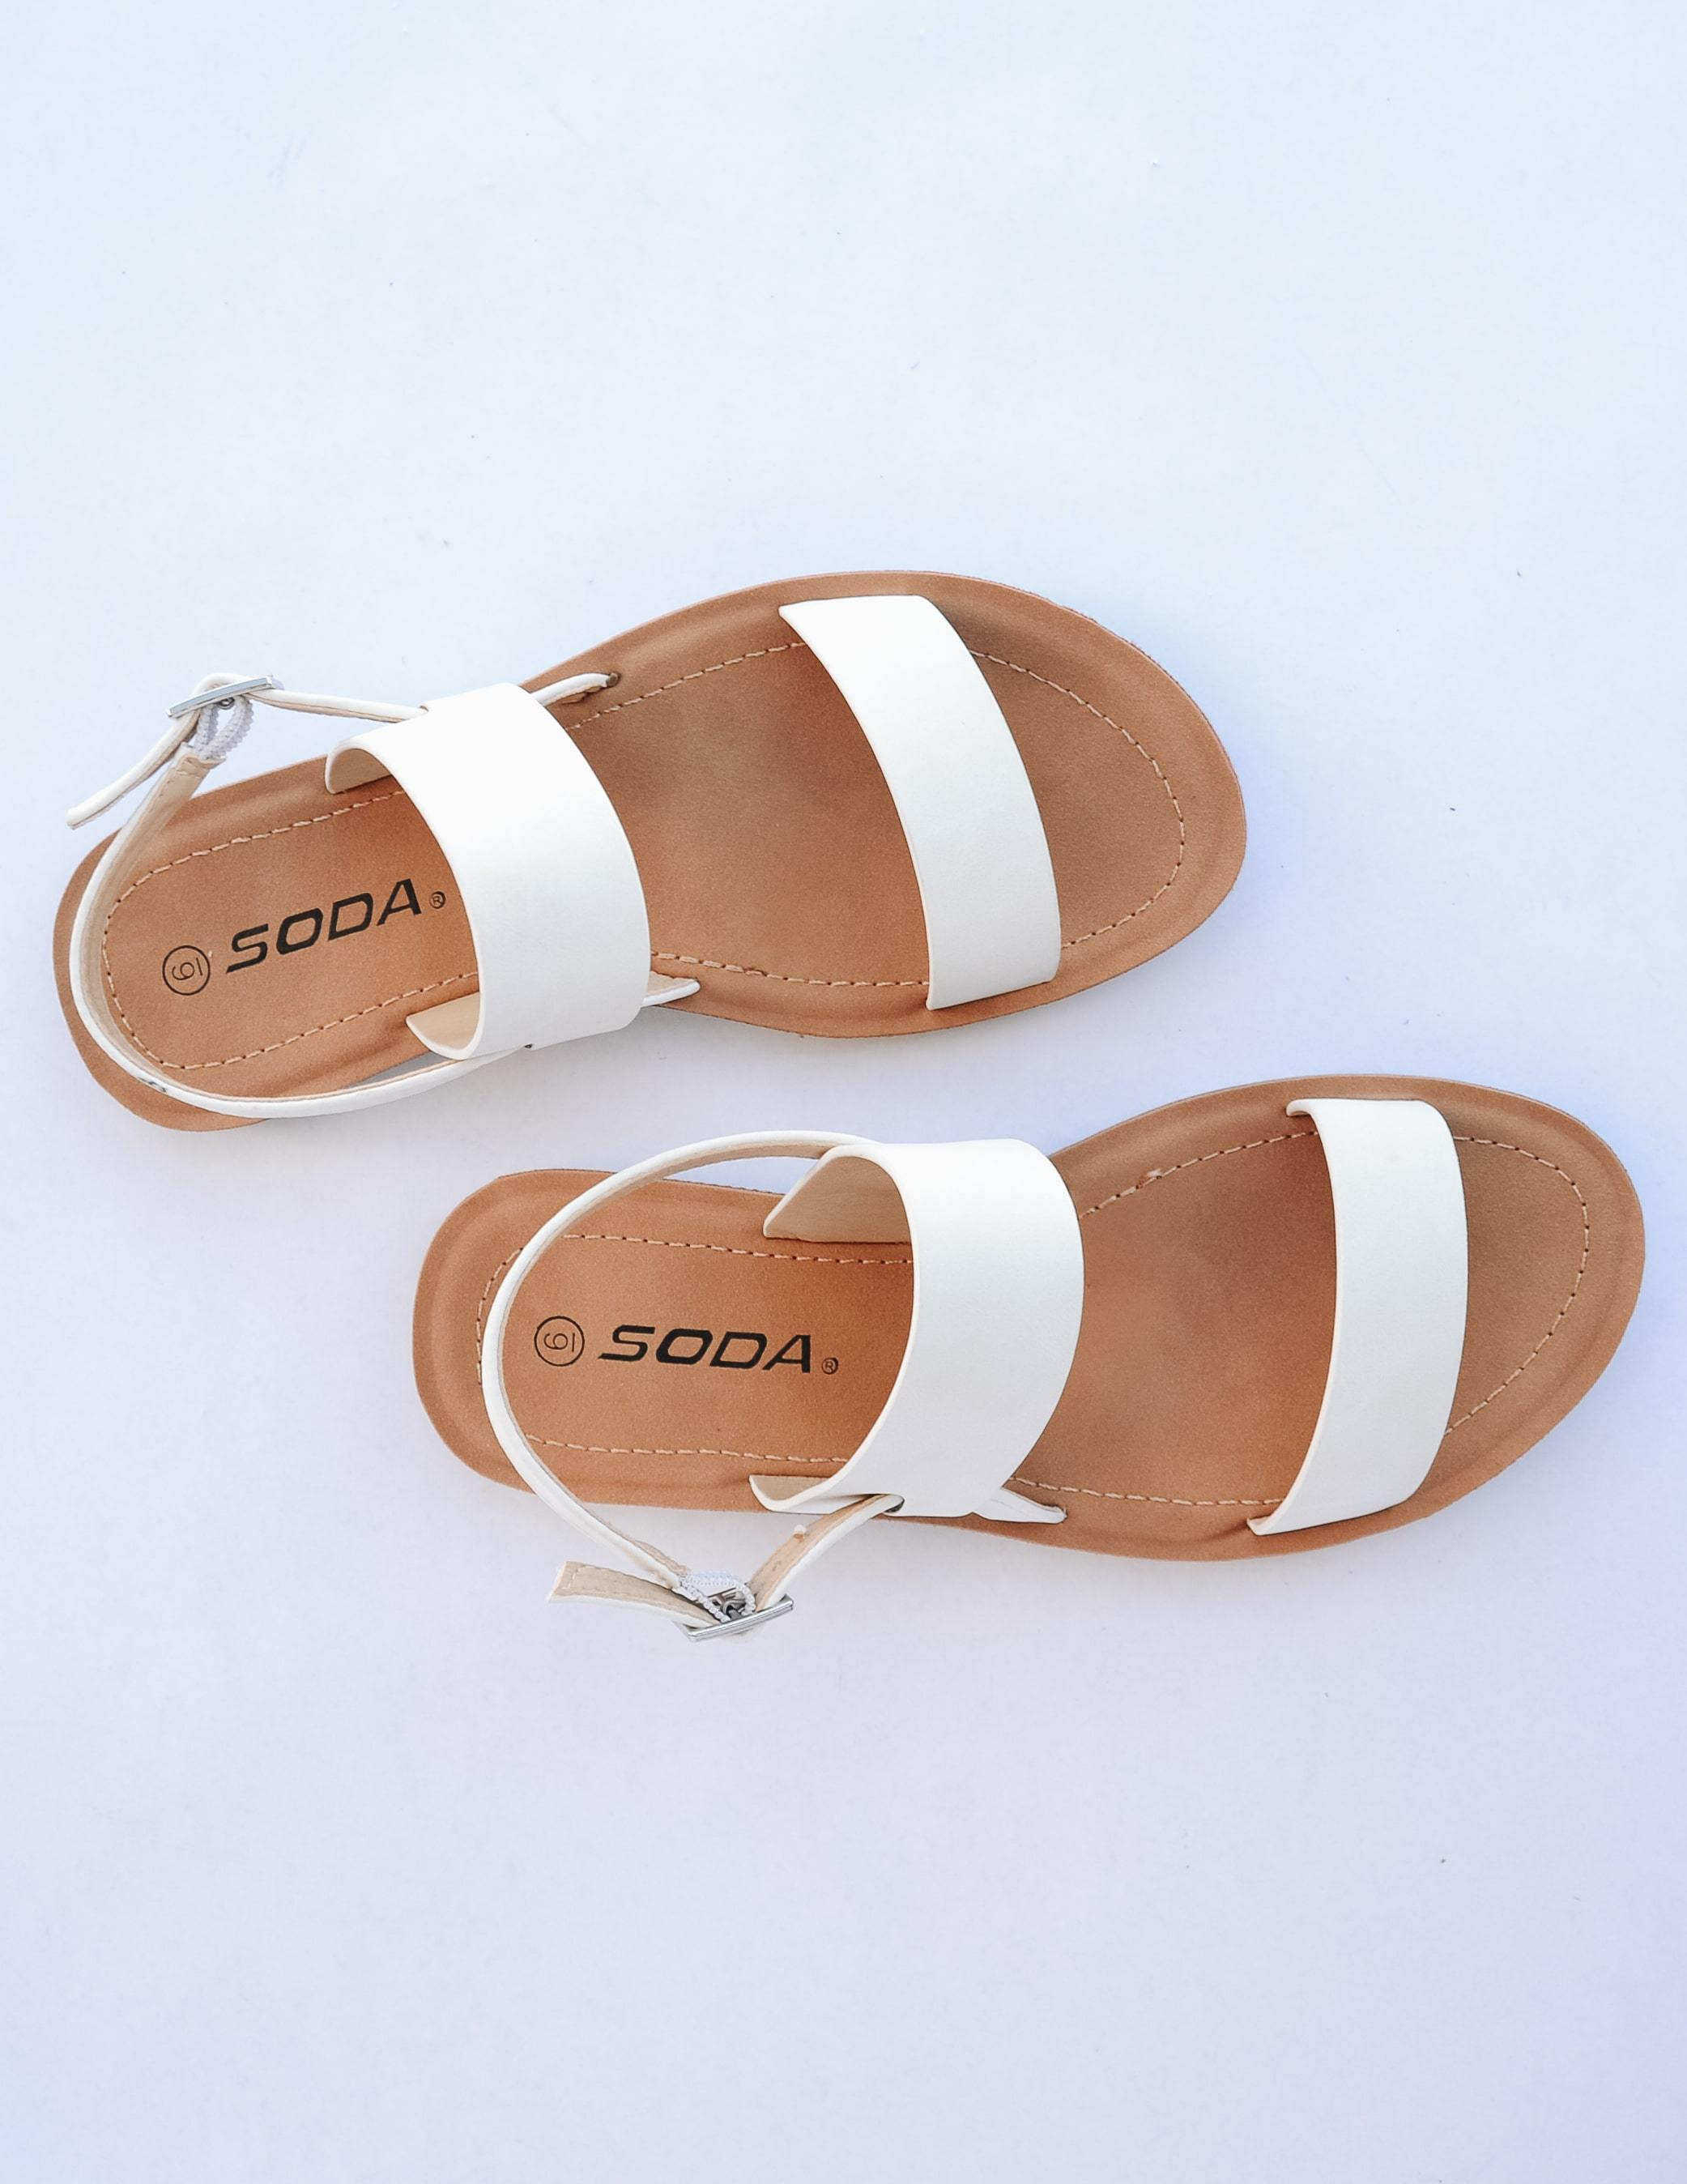 Top view of the off white strappy sandal with tan insole